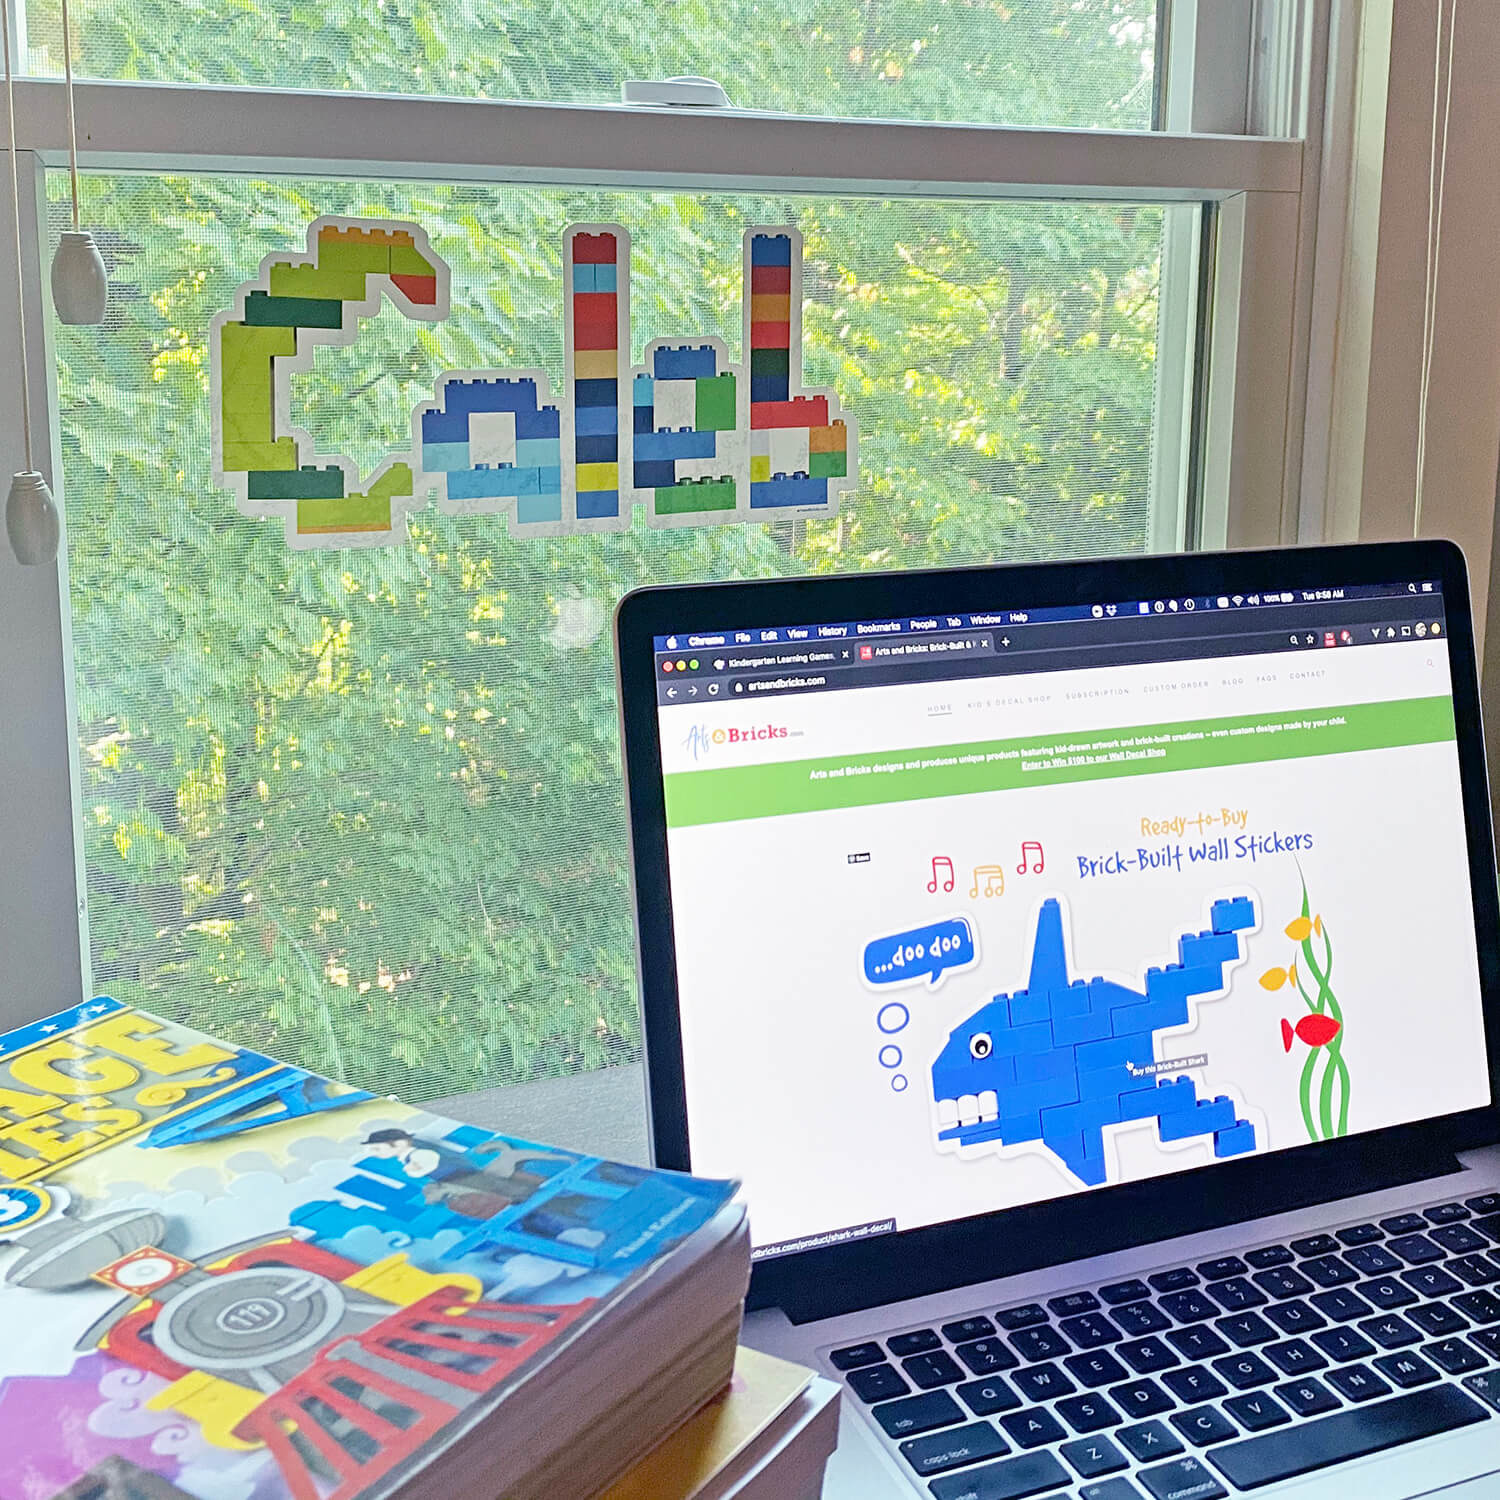 Window cling Name Sticker built from Lego bricks for virtual learning space